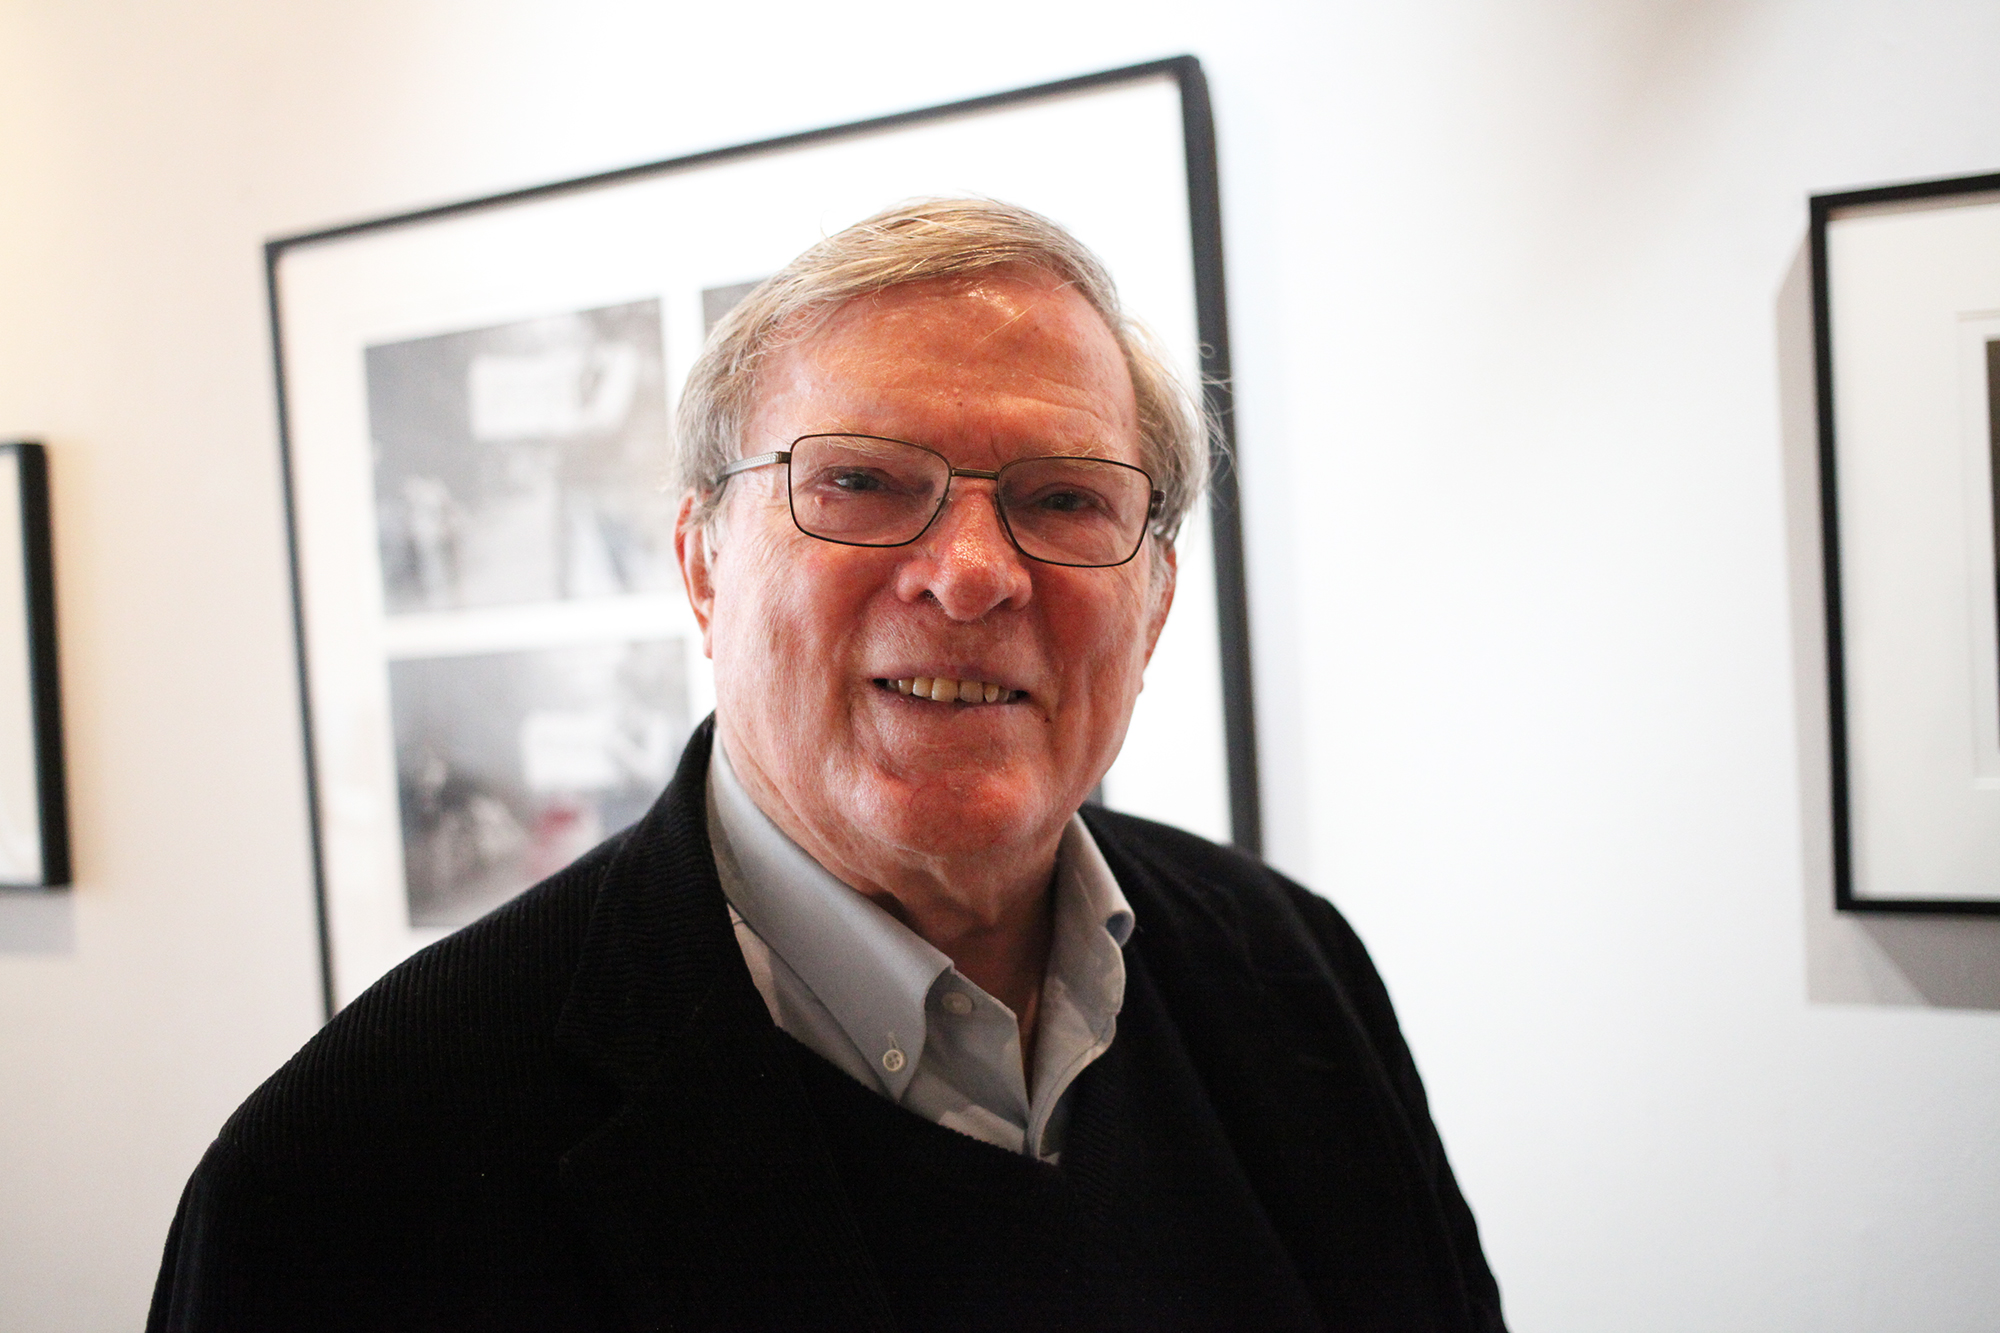 D.A. Pennebaker in New York City on May 19, 2016. Kenneth Bachor for TIME